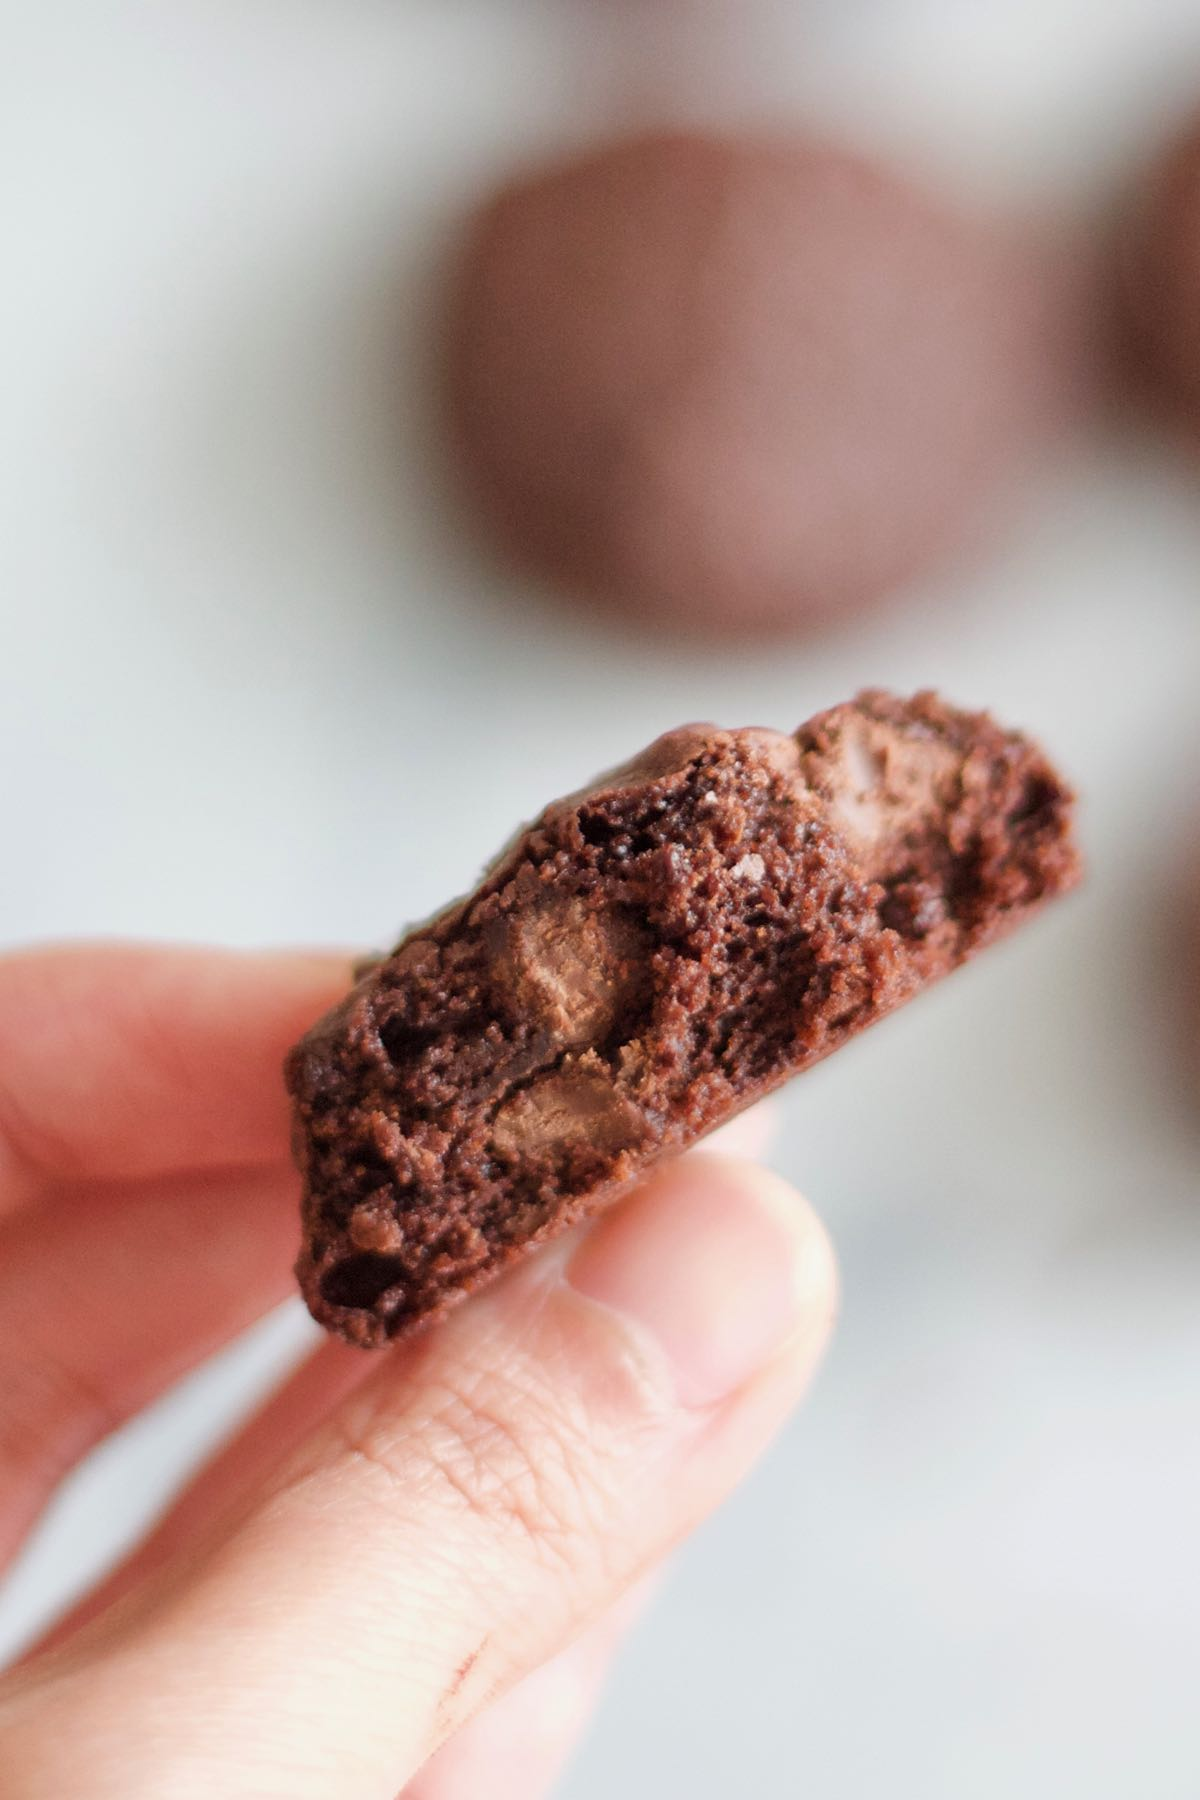 close-up picture of the dark chocolate chip cookie